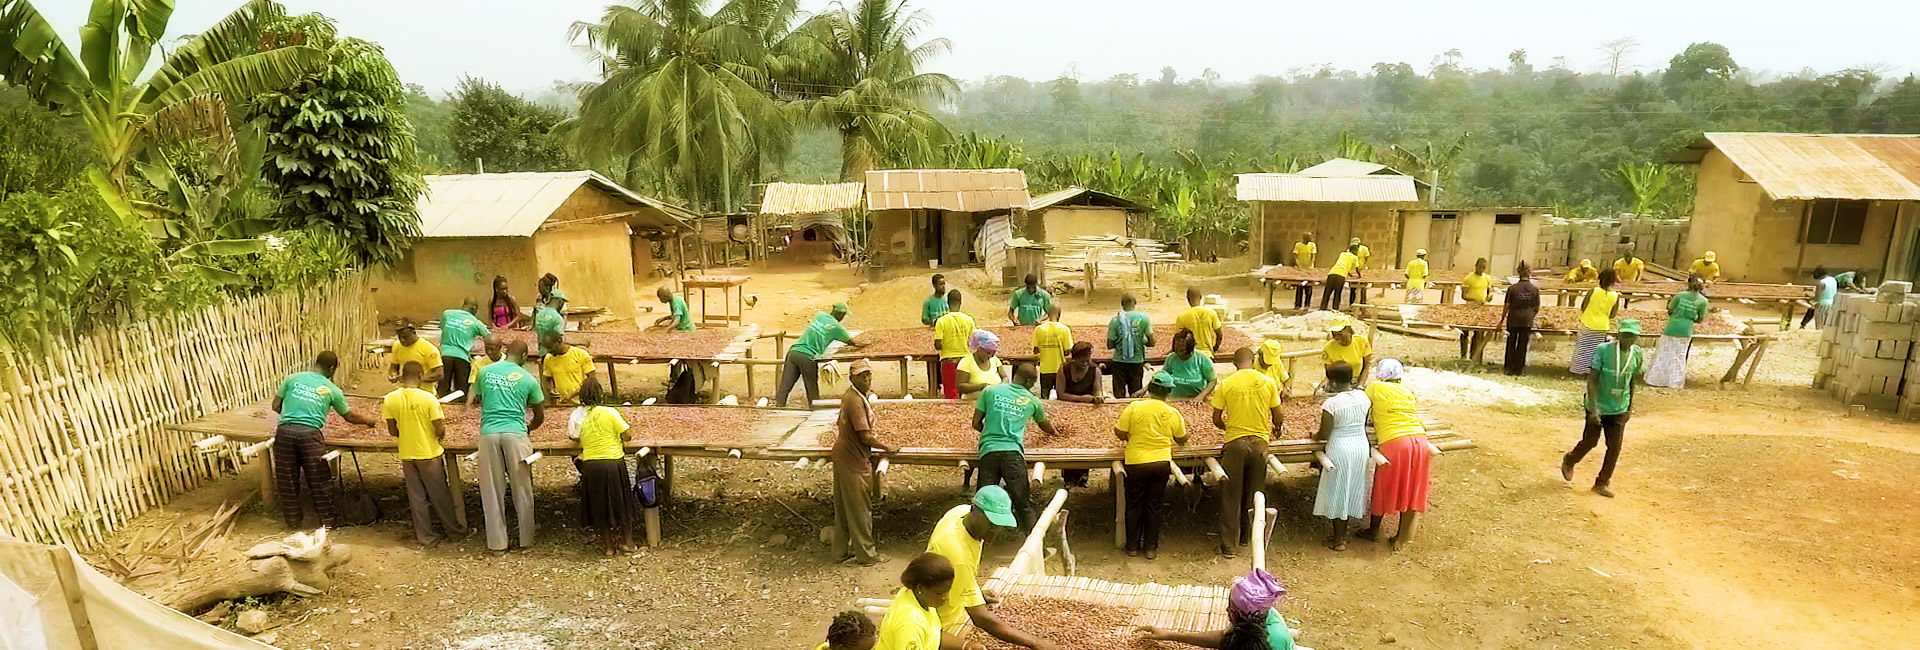 Cocoa Abrabopa Association farmers working in the village